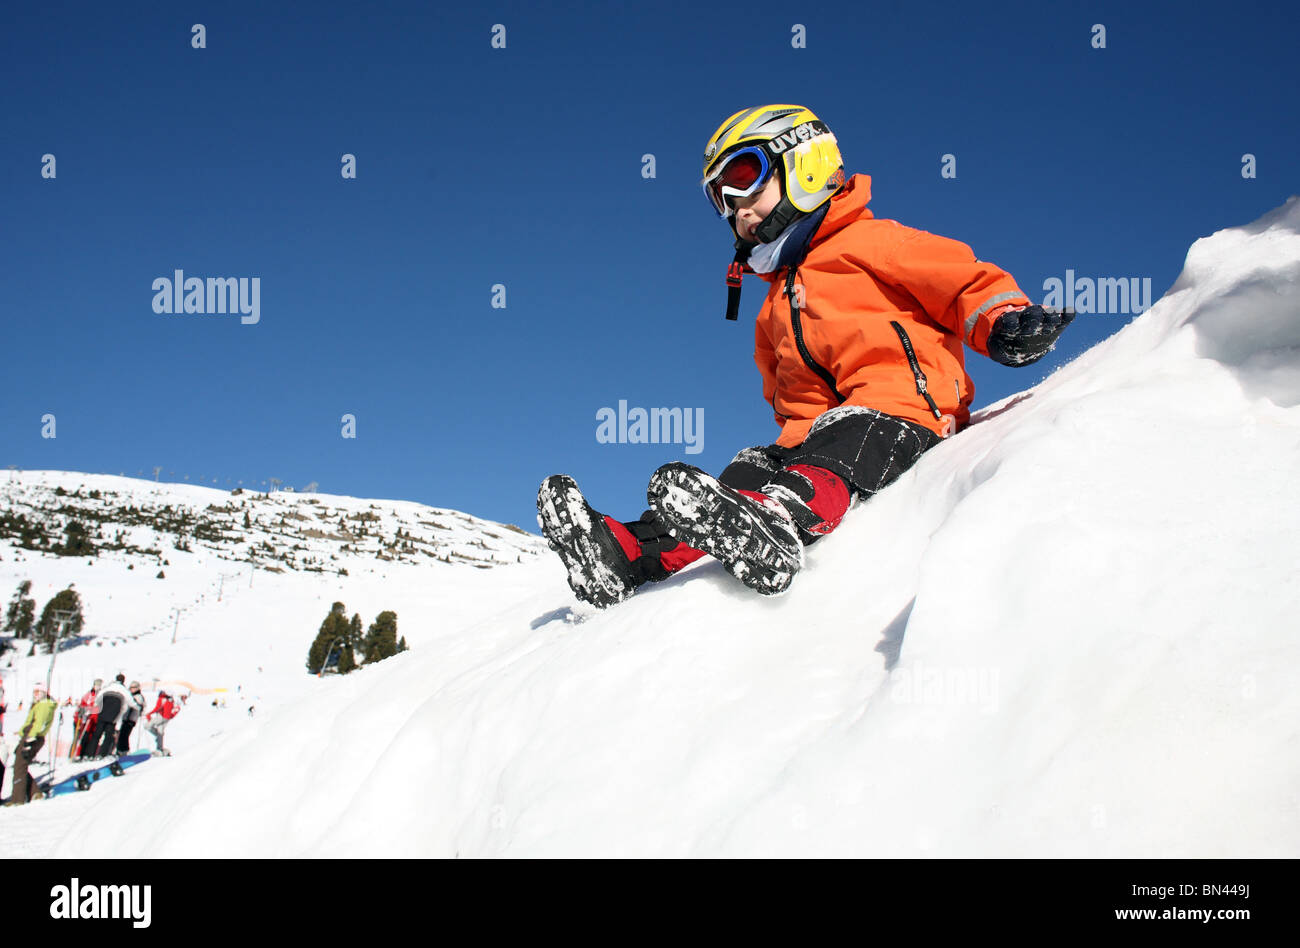 Child in safety helmet slipping down a snowy slope, Jerzens, Austria - Stock Image